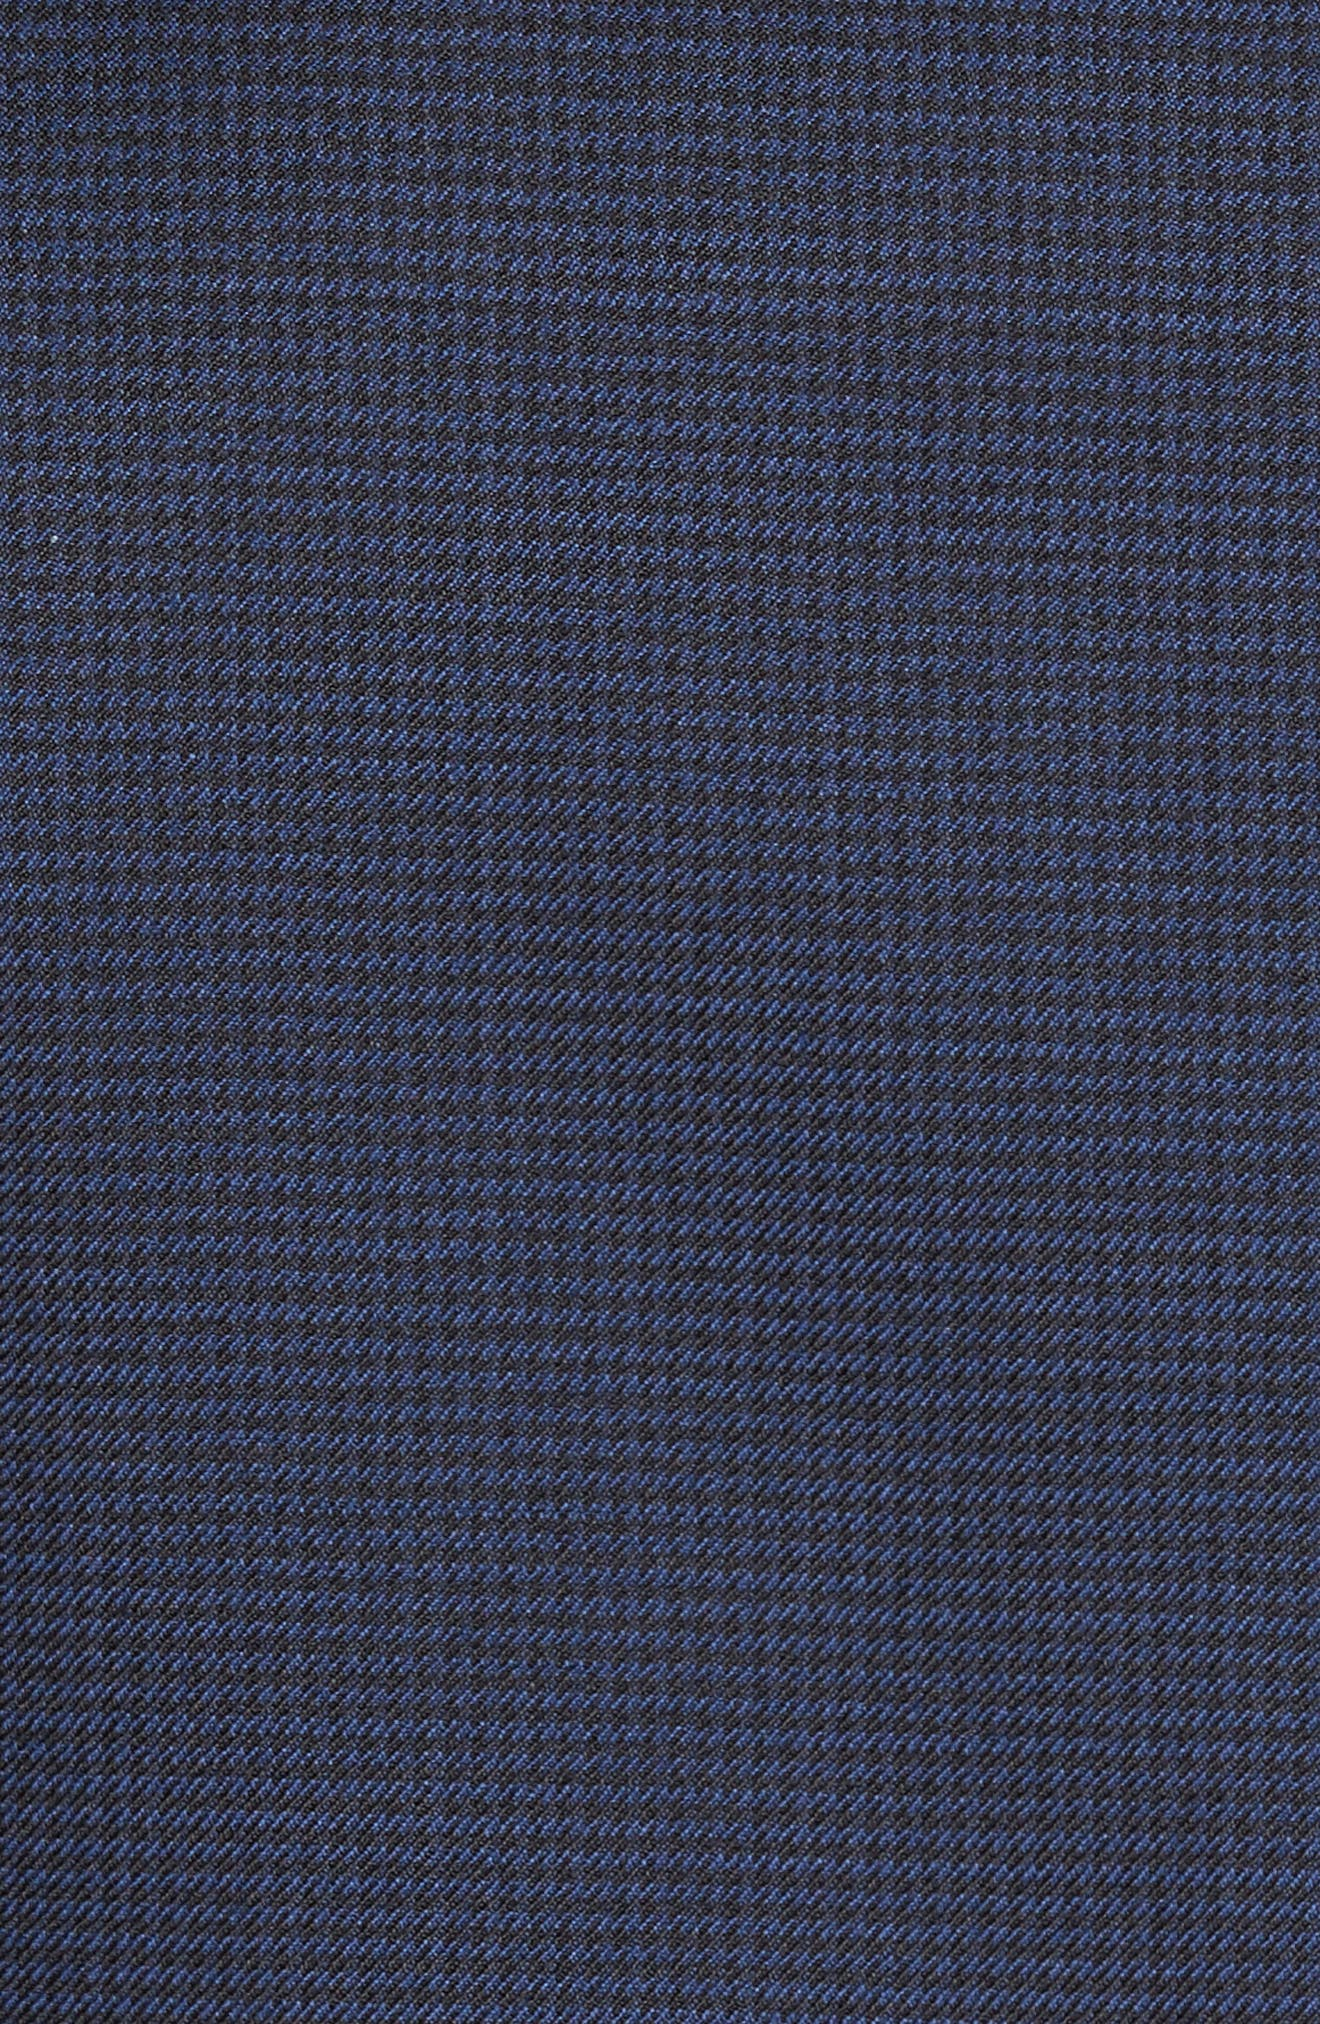 Ryan Classic Fit Wool Suit,                             Alternate thumbnail 7, color,                             Navy